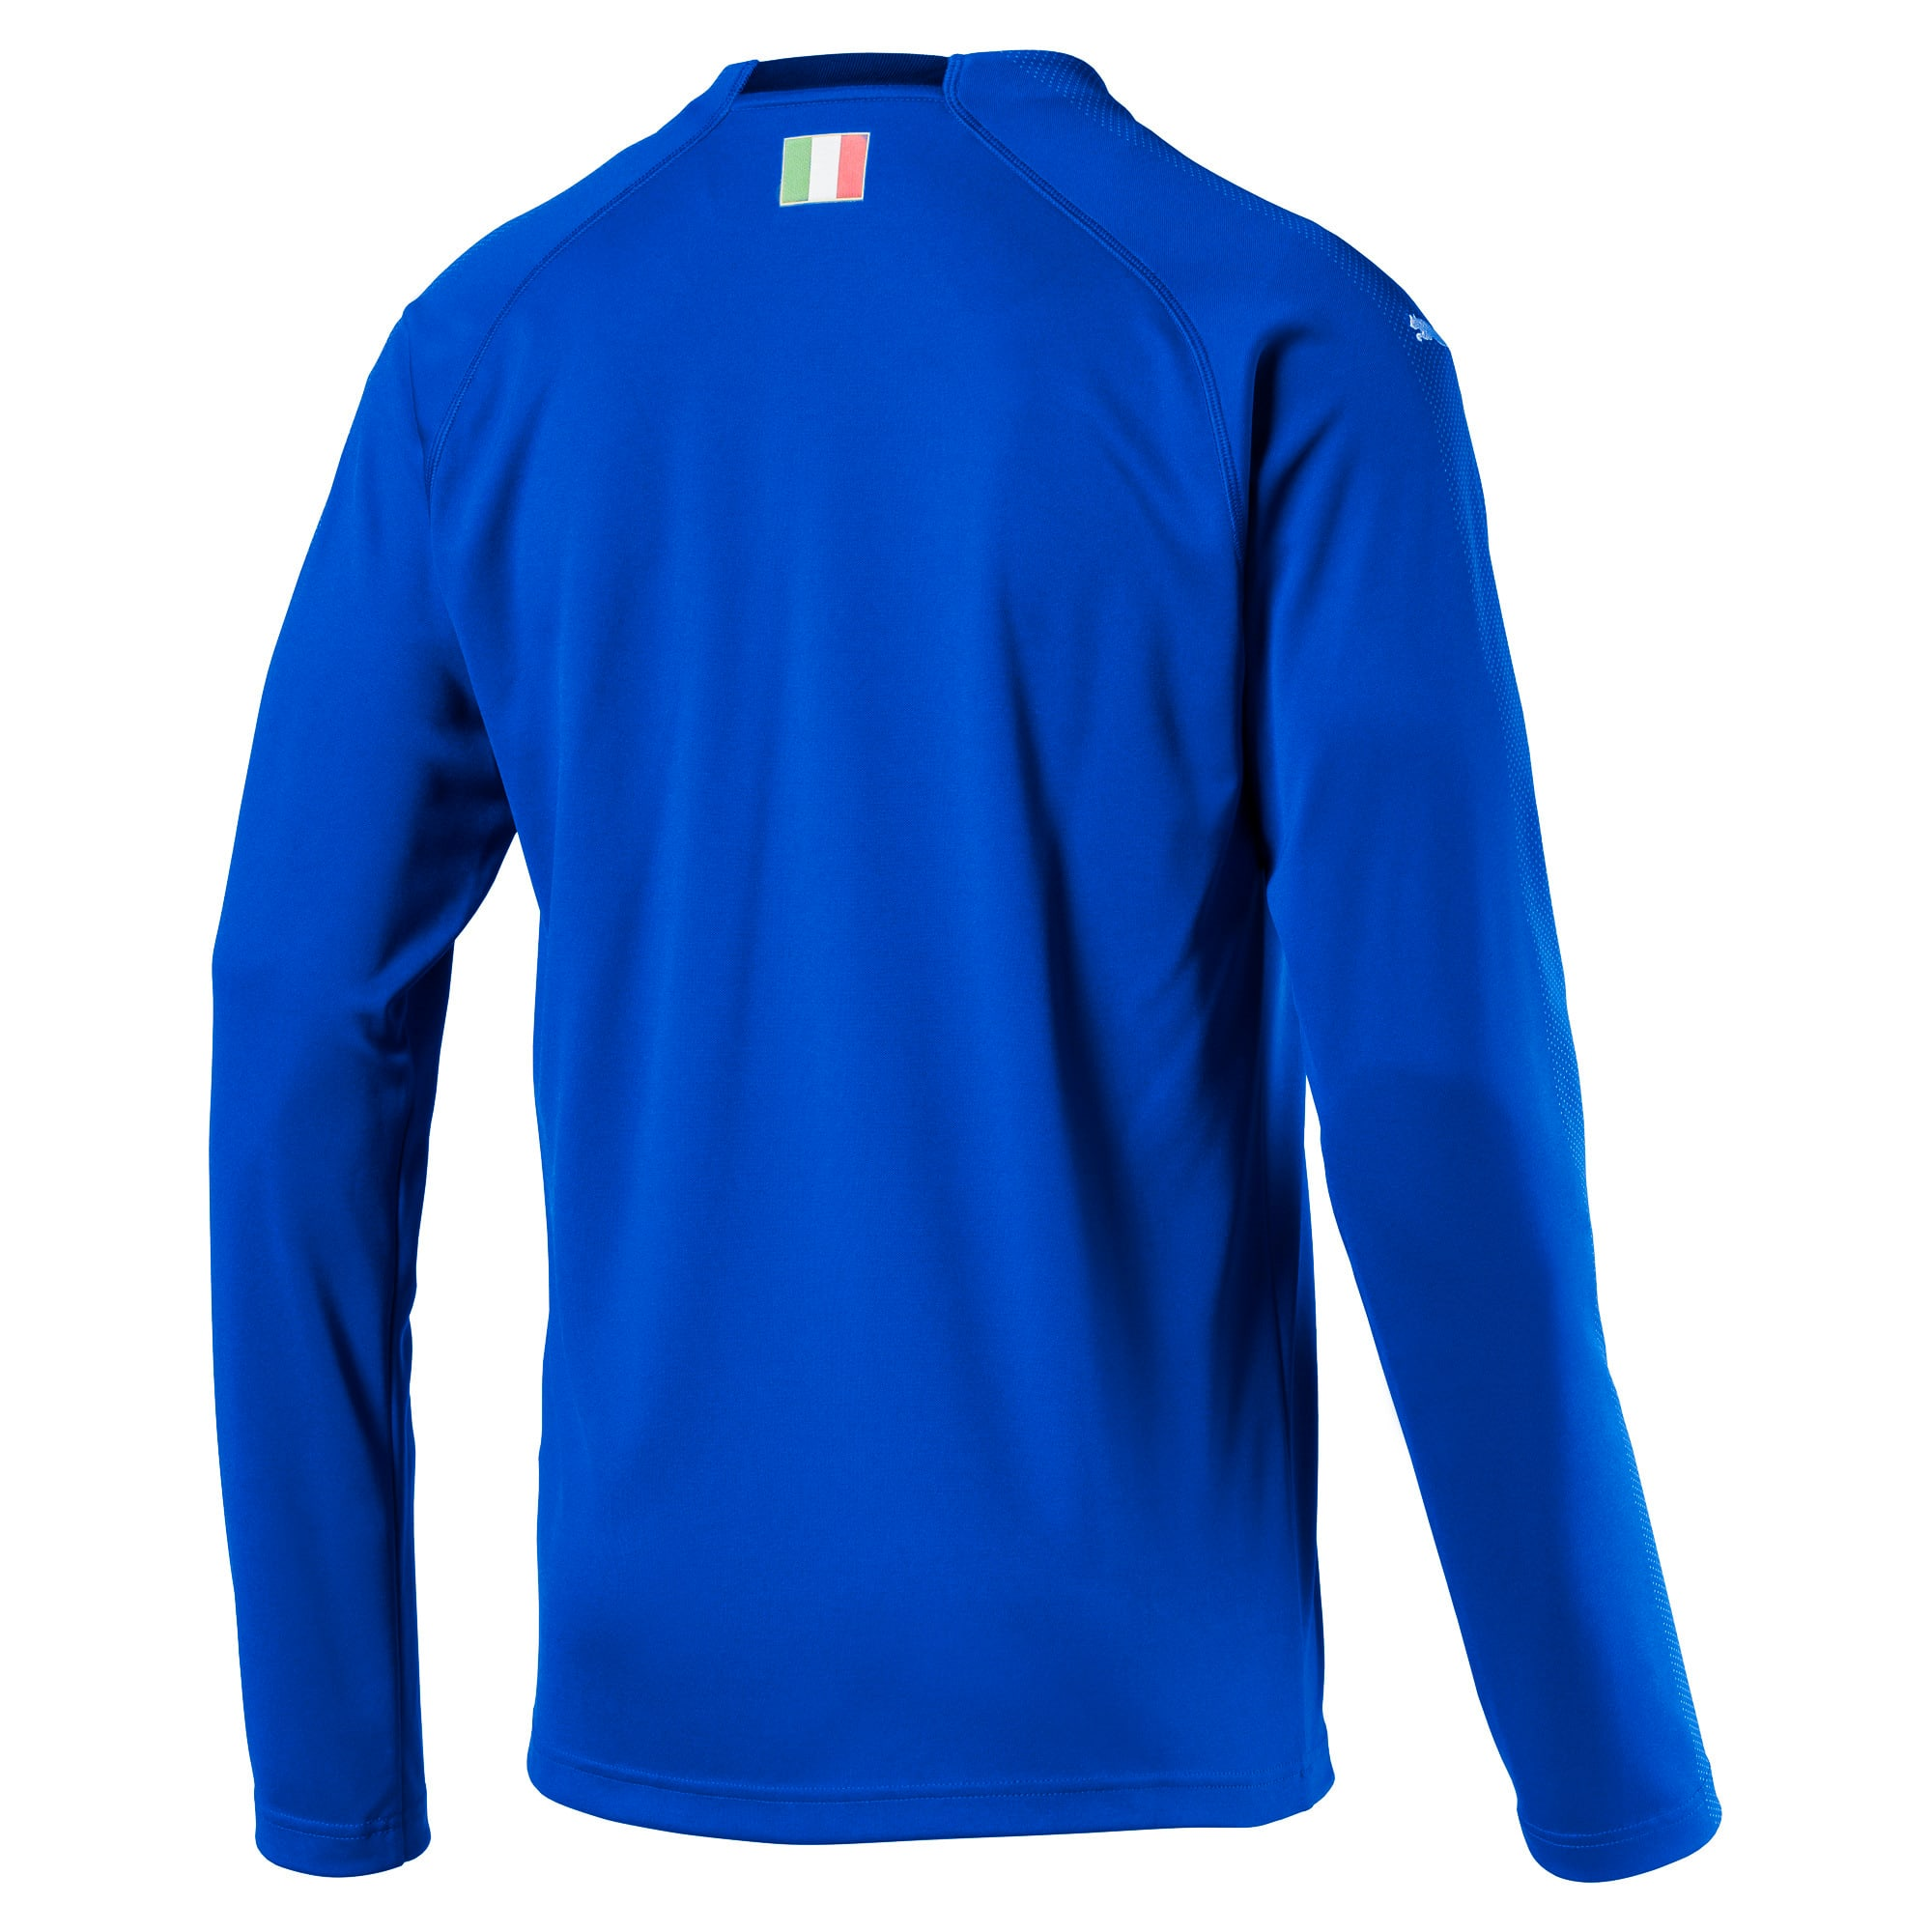 Italia Long Sleeve Home Replica Jersey, Team Power Blue-Peacoat, large